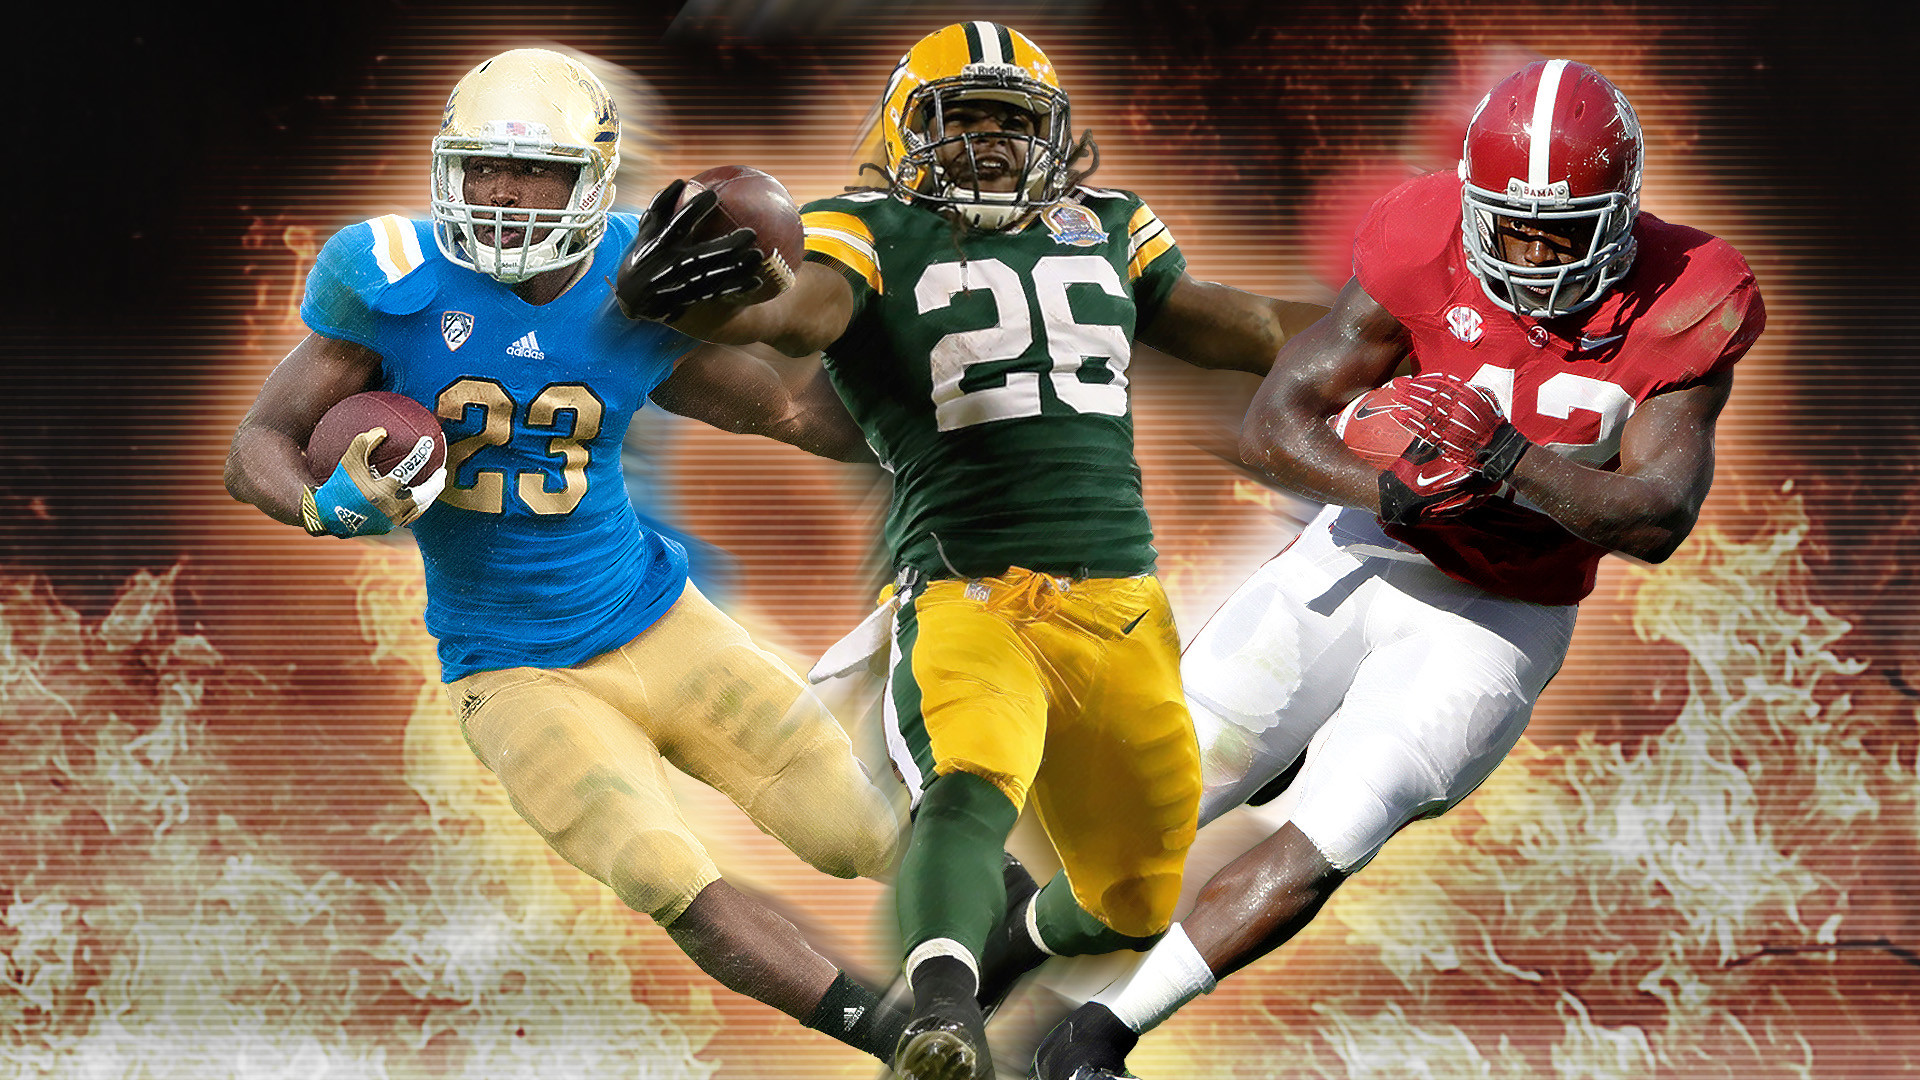 1920x1080 Eddie Lacy Green Bay Packers Wallpaper